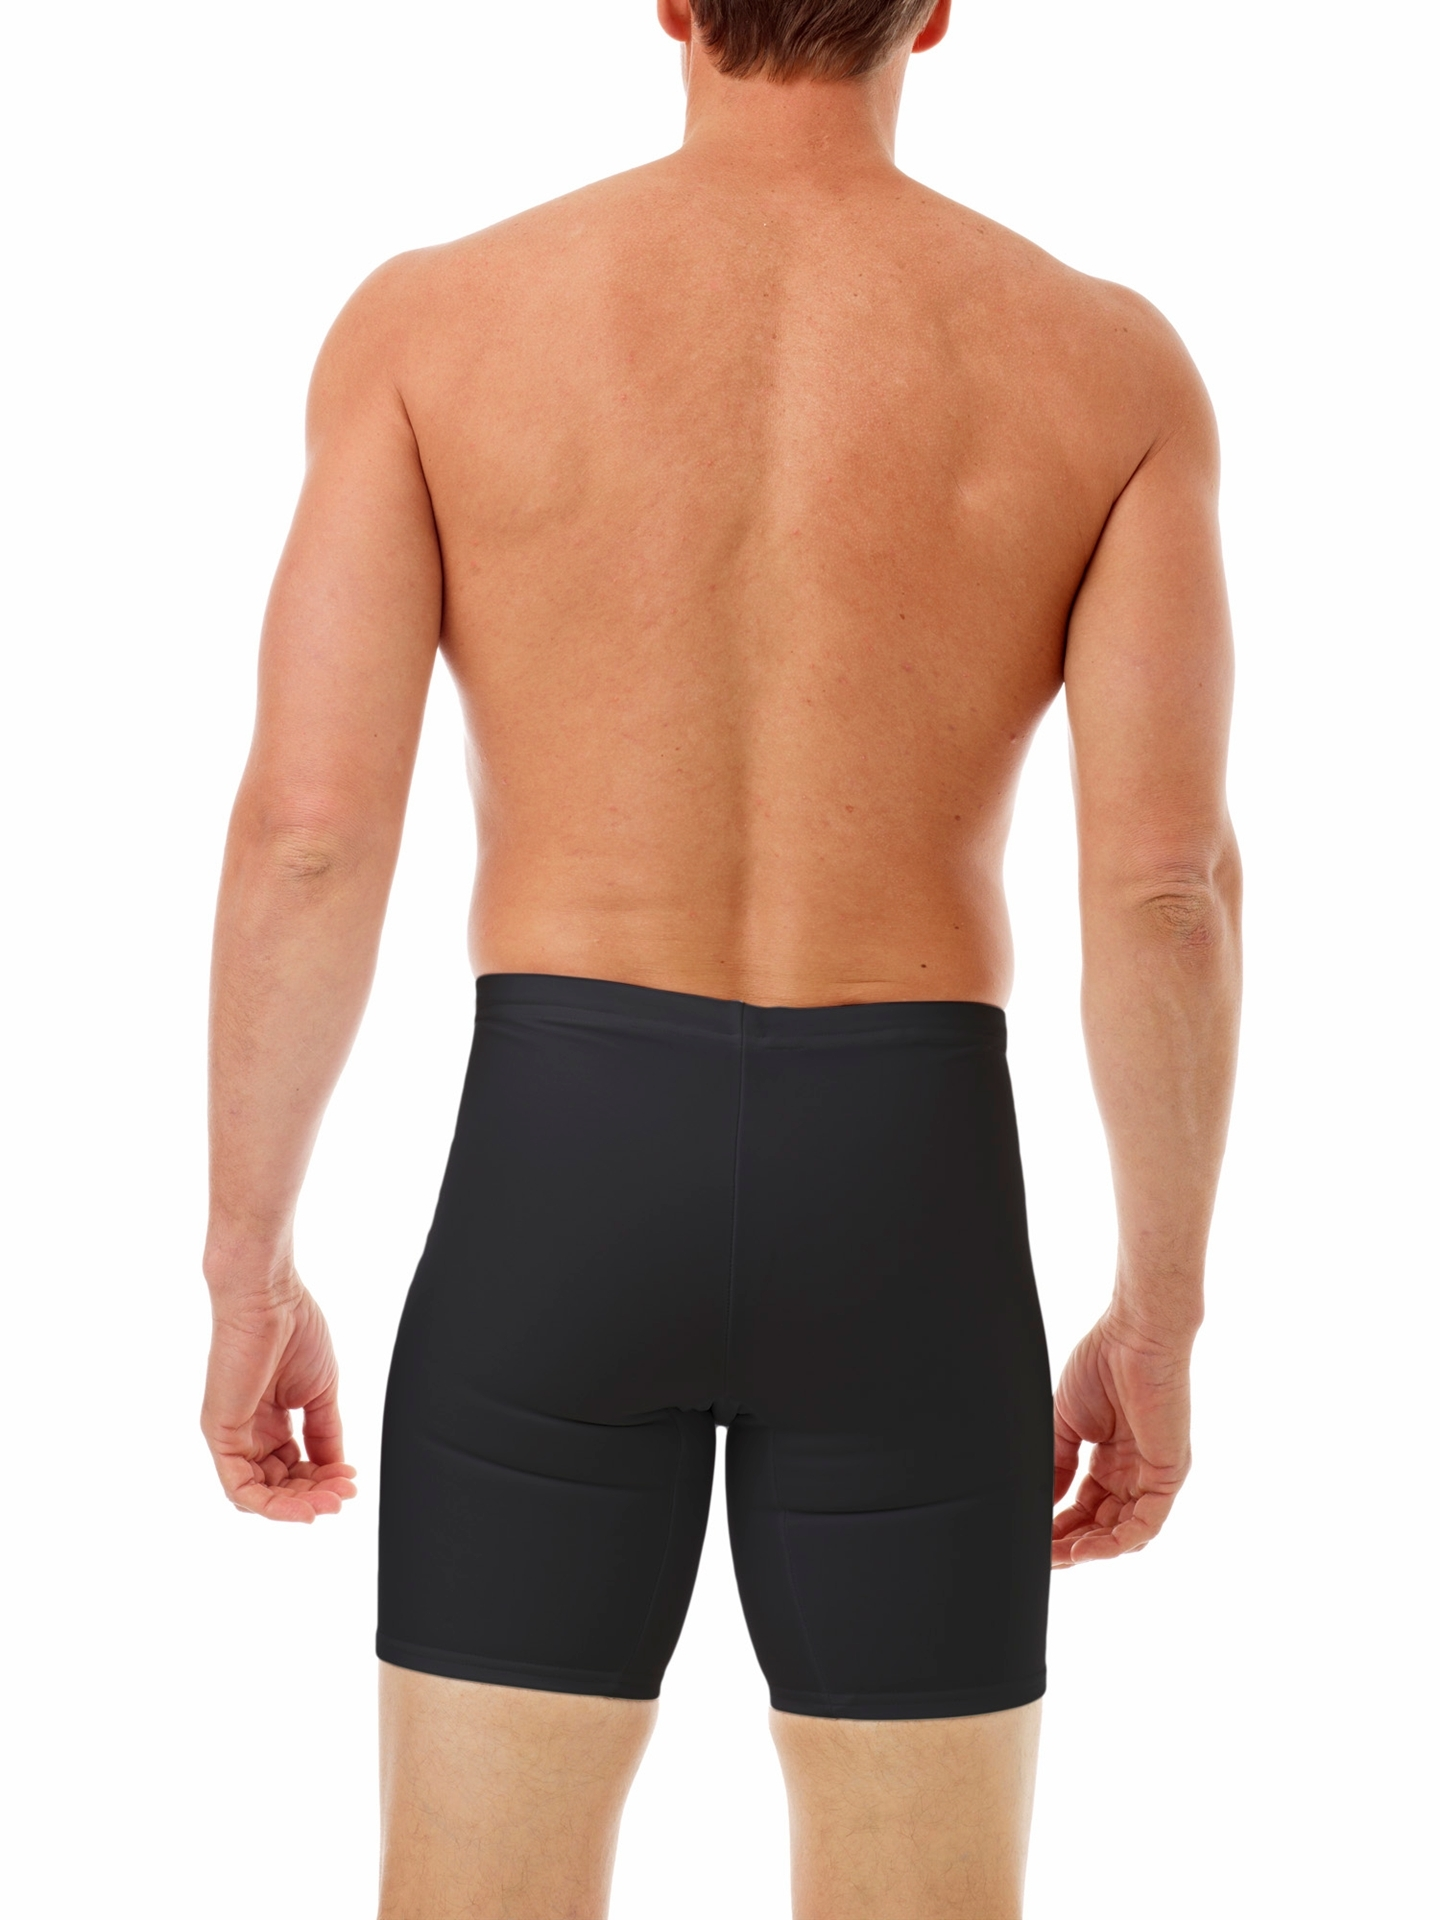 Picture of Mens Hip Buster and Thigh Compression Shaper Brief